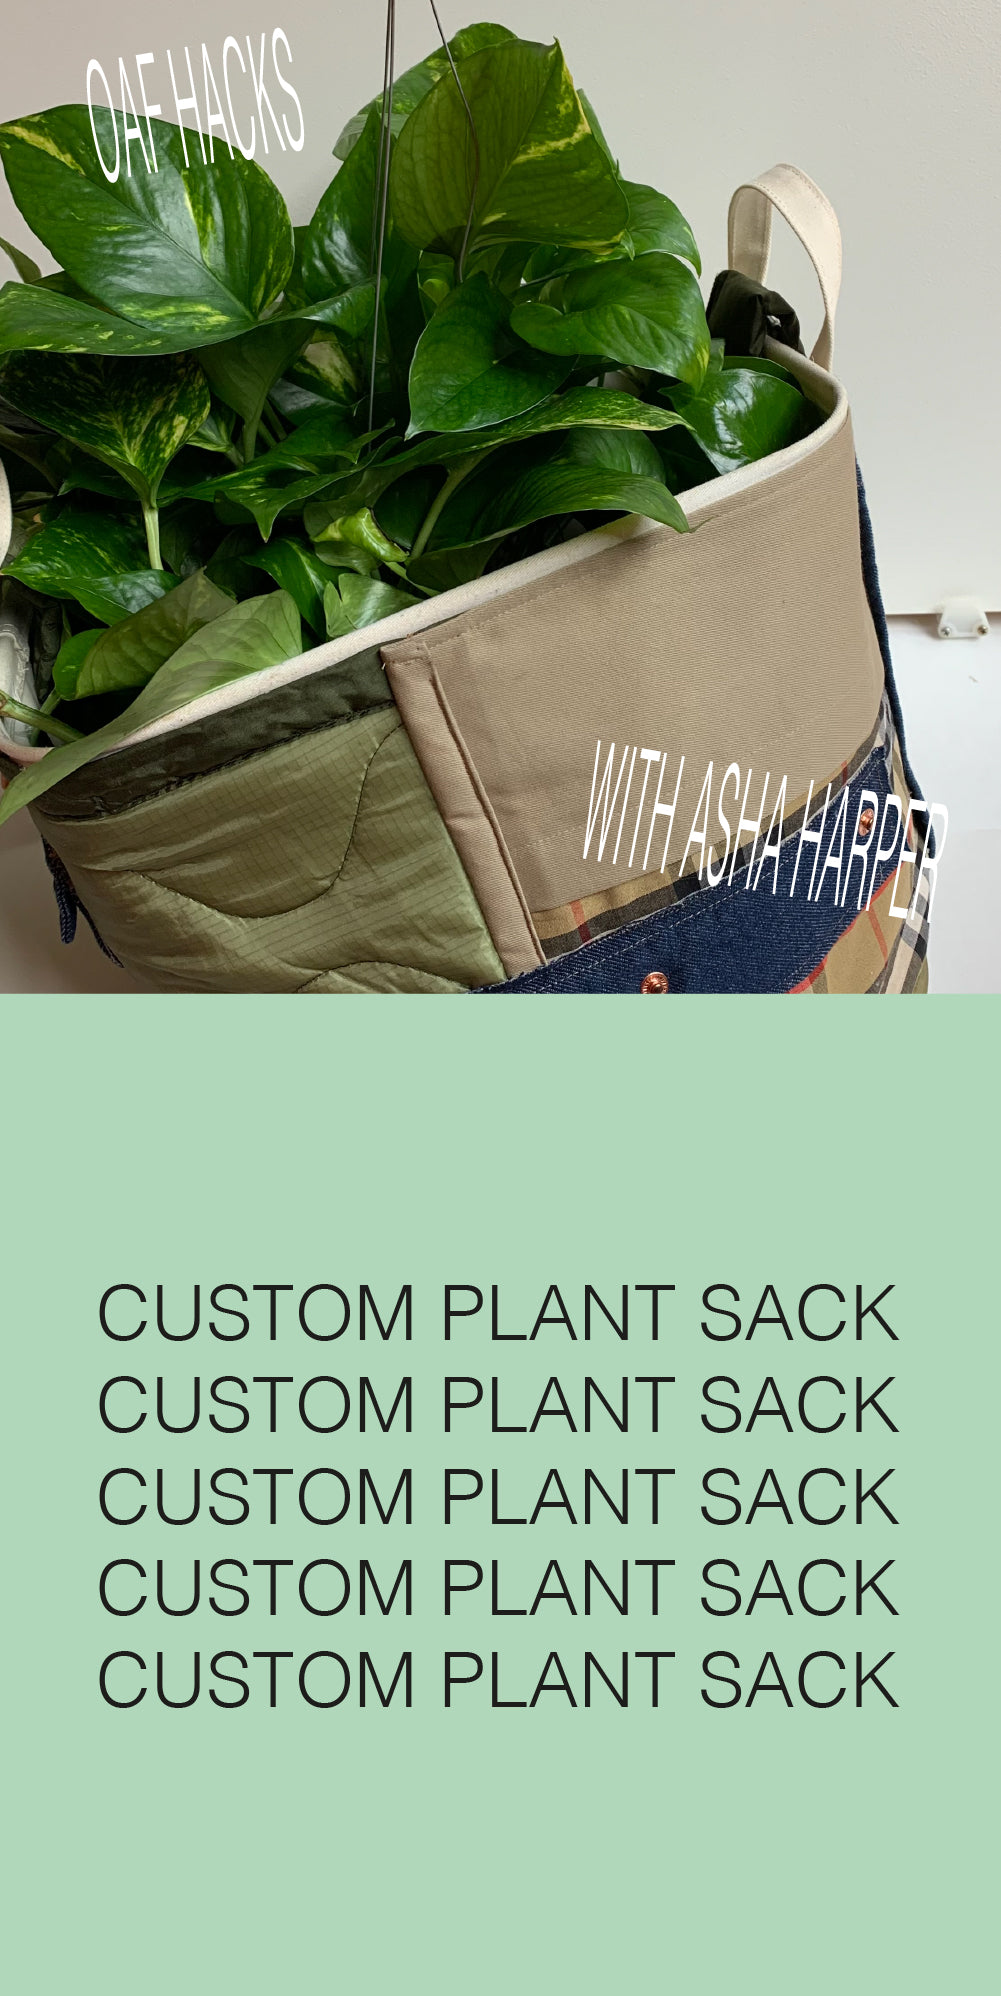 Oaf Hacks: Custom Planter with Asha Harper